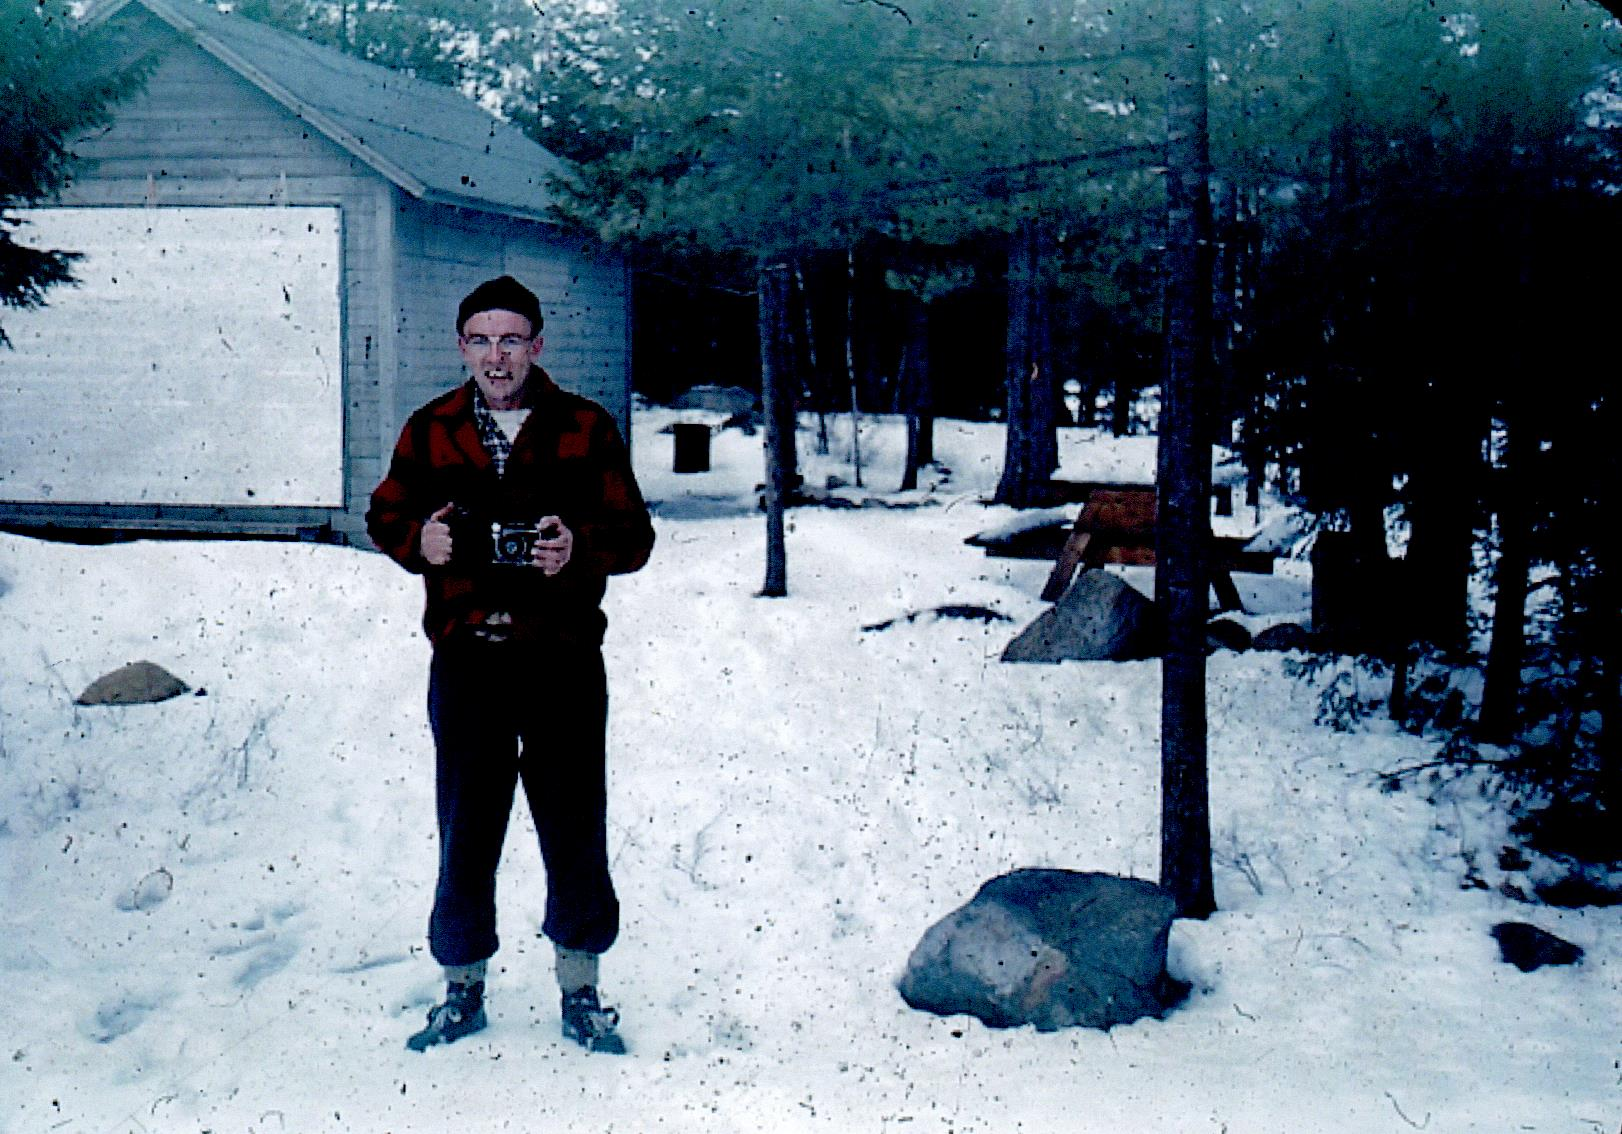 Spring Island - Winter - Pete Linsley with Cook Cabin in background